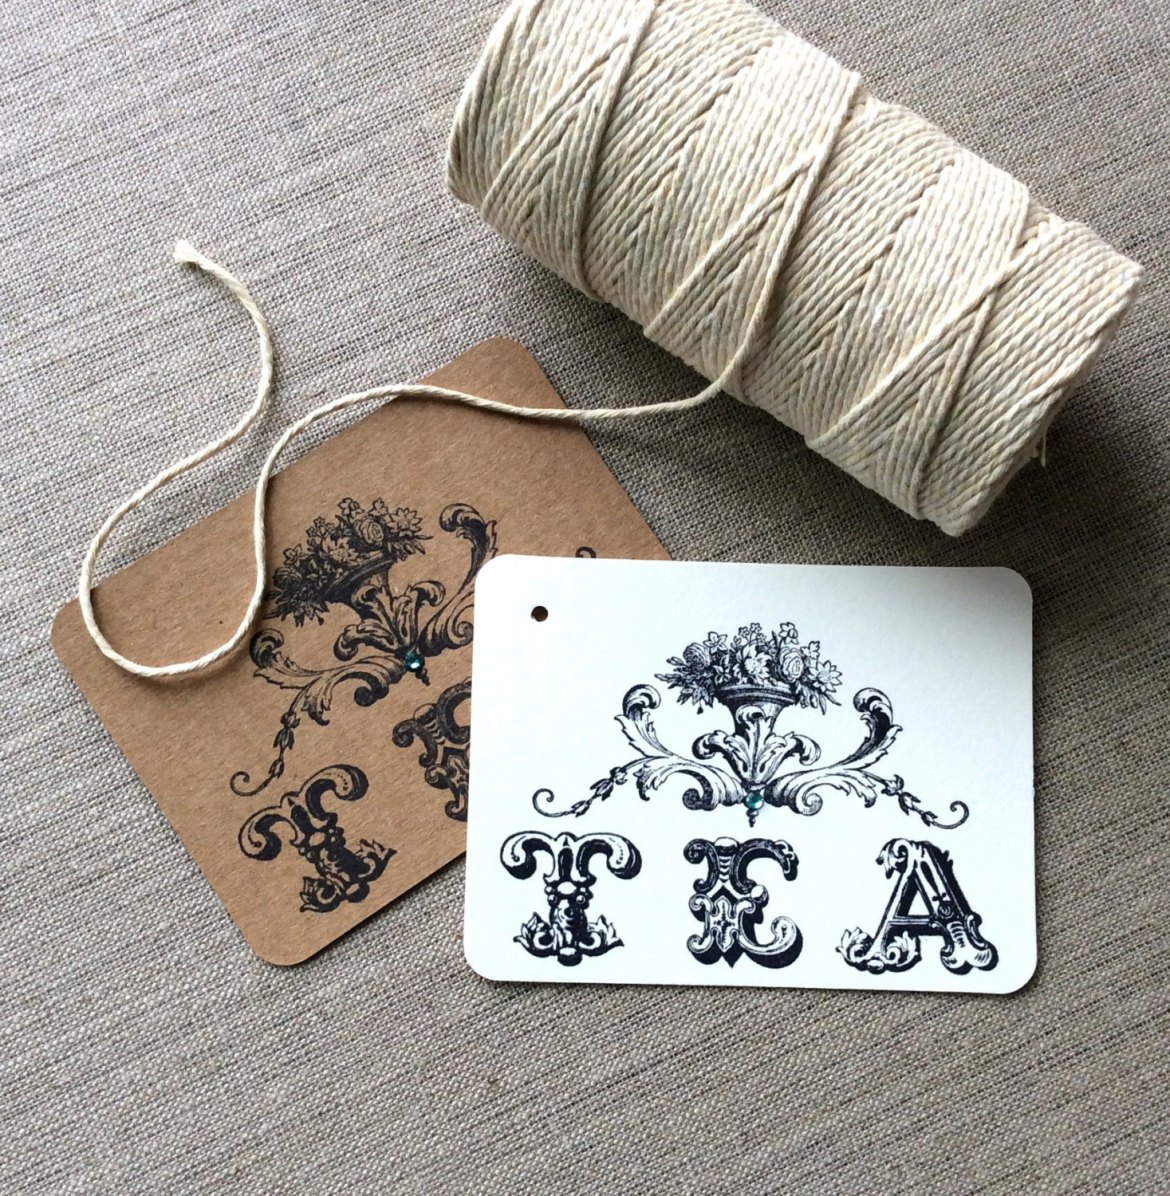 Vintage Inspired Favor Tags | by Beth and Olivia